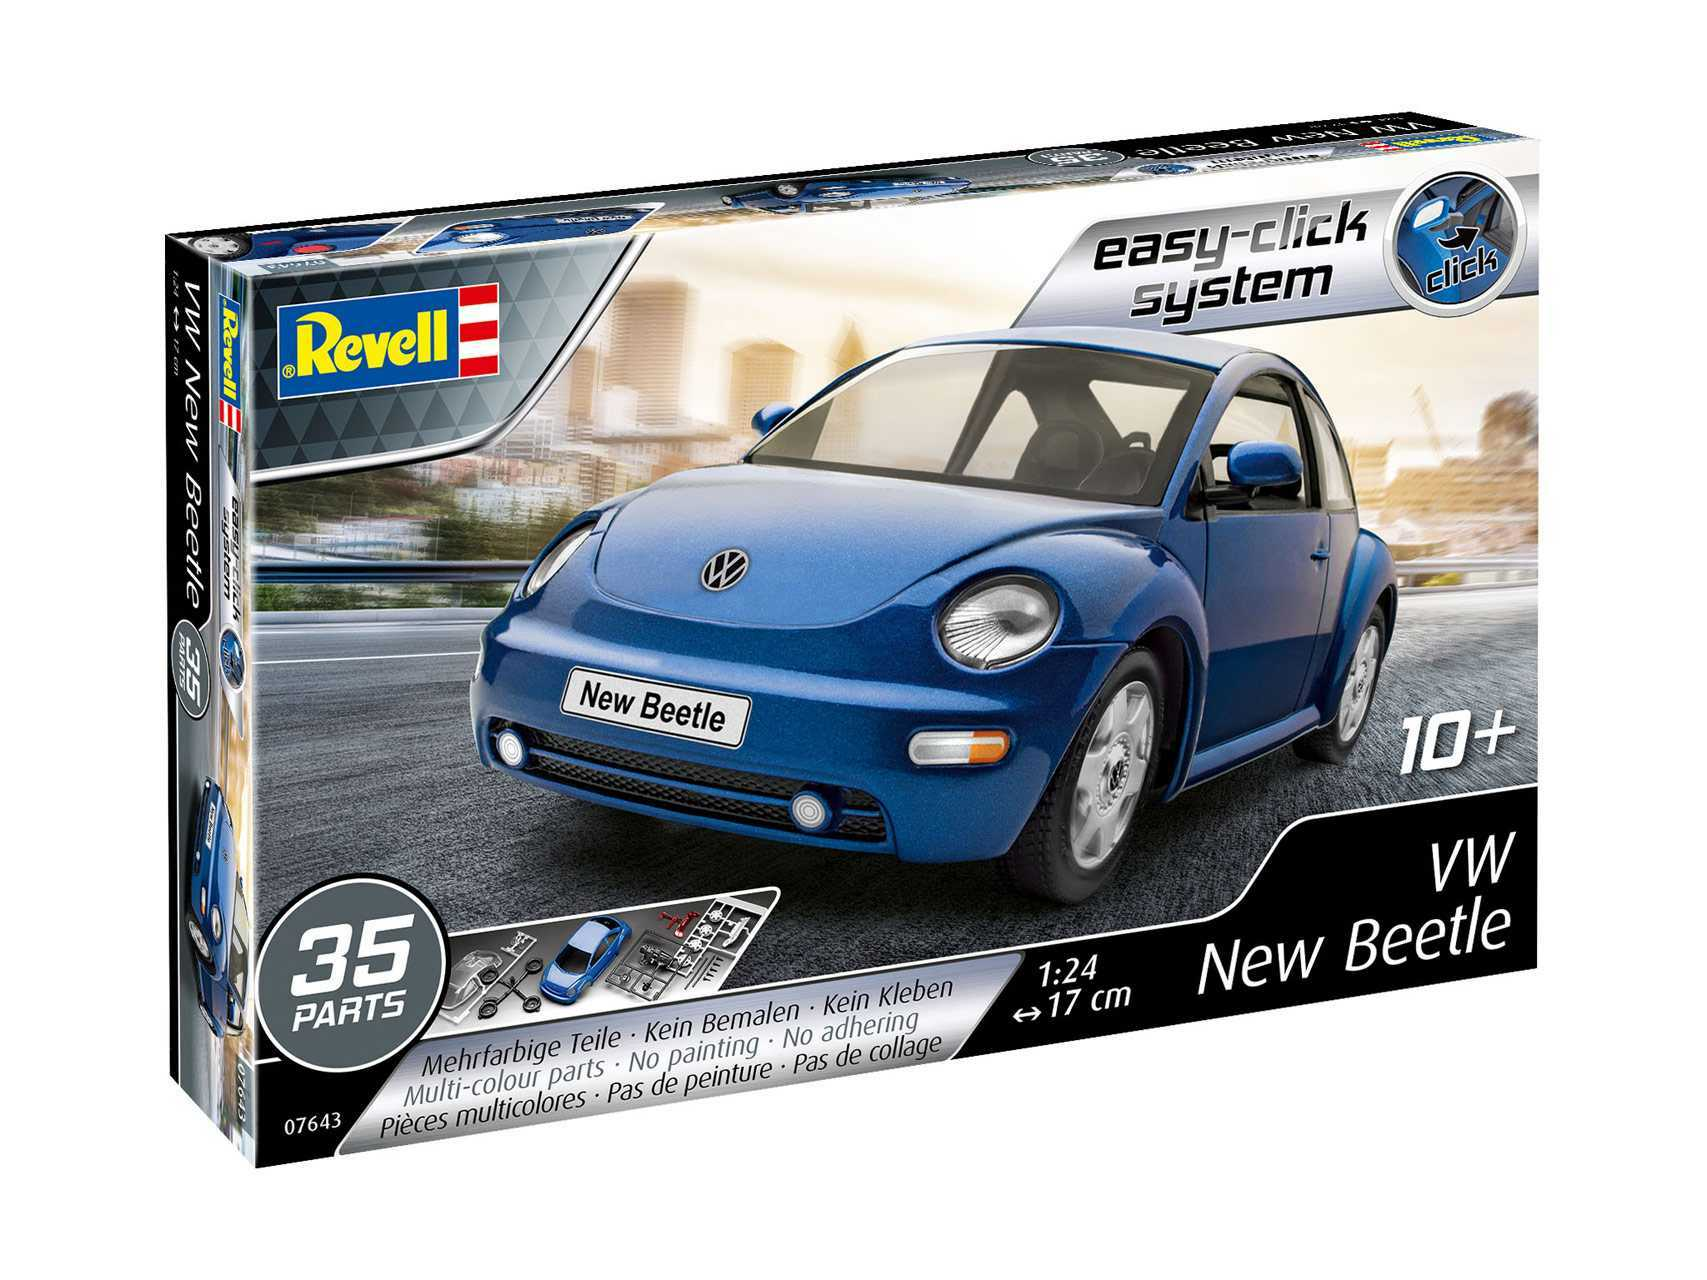 1:24 VW New Beetle (Easy-Click System, Model Set)